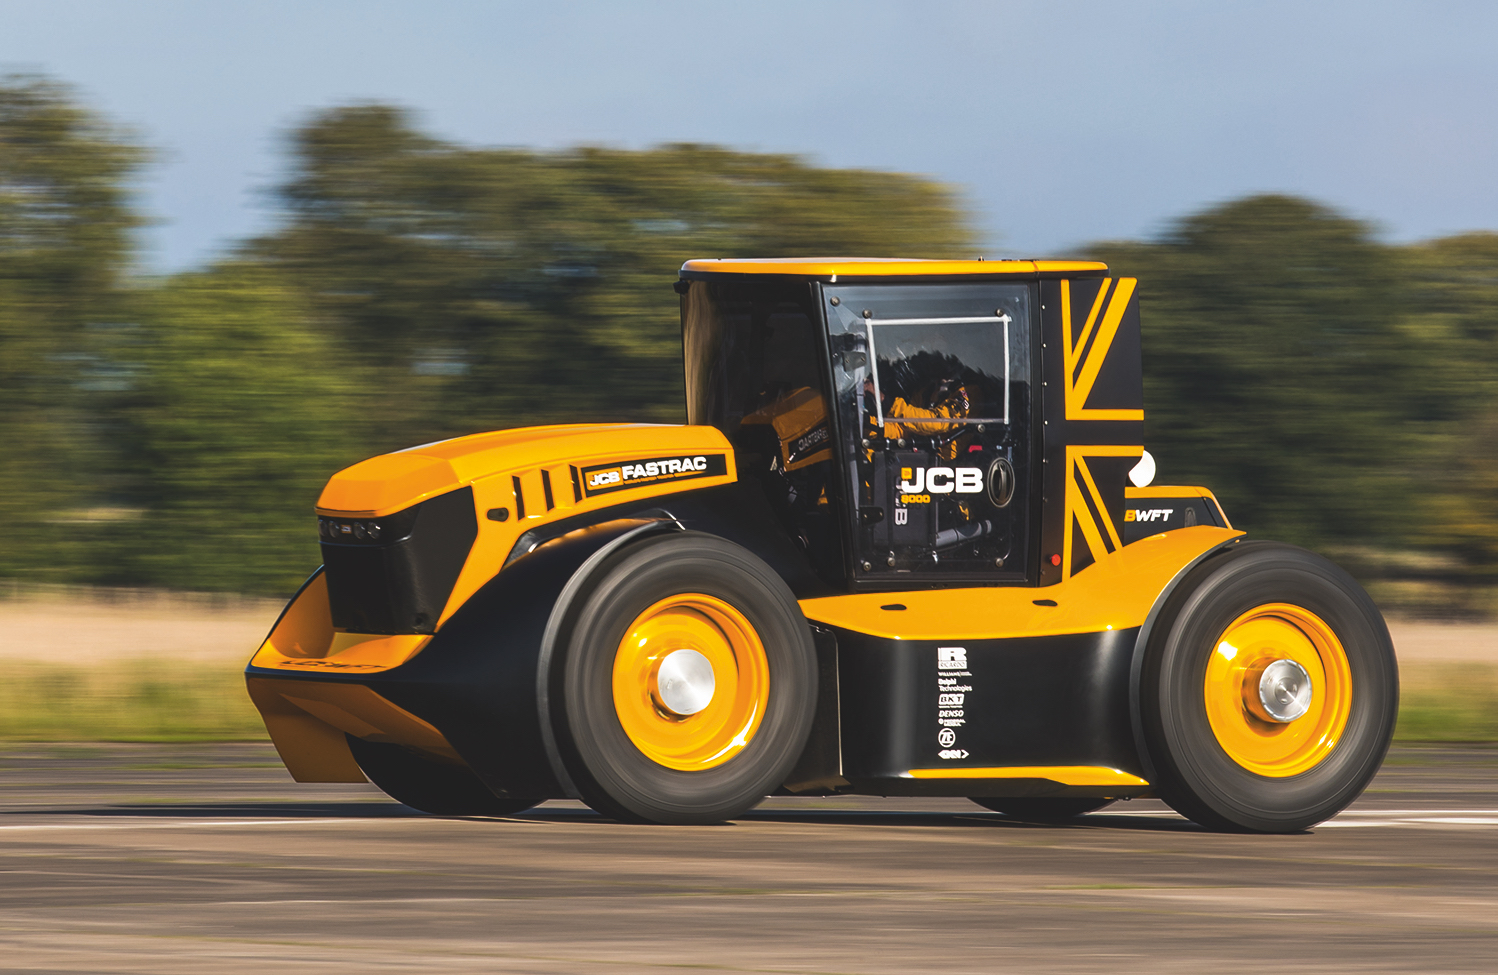 https://www.equipmentworld.com/wp-content/uploads/sites/2/2019/11/The-JCB-Fastrac-speeds-towards-the-Worlds-Fastest-Tractor-title-3.jpg